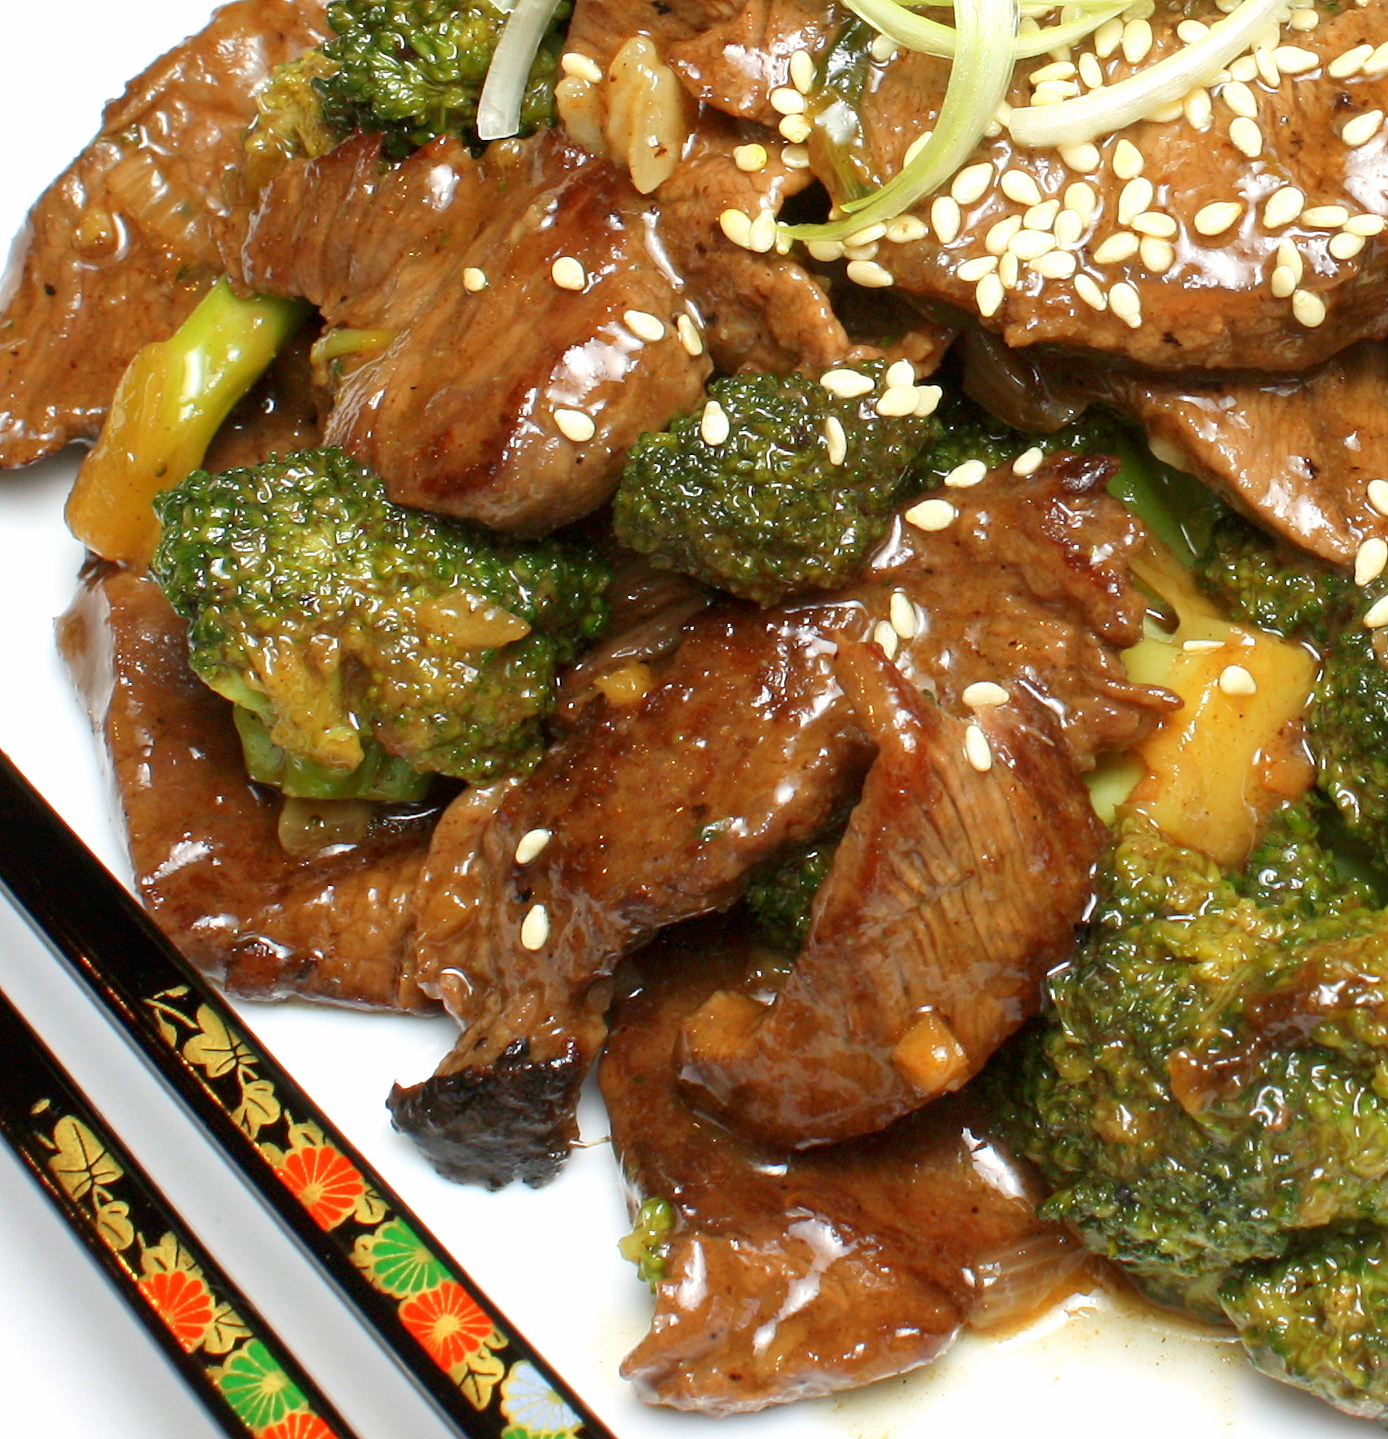 Stir Fry Ginger Beef and Broccoli | Wives with Knives